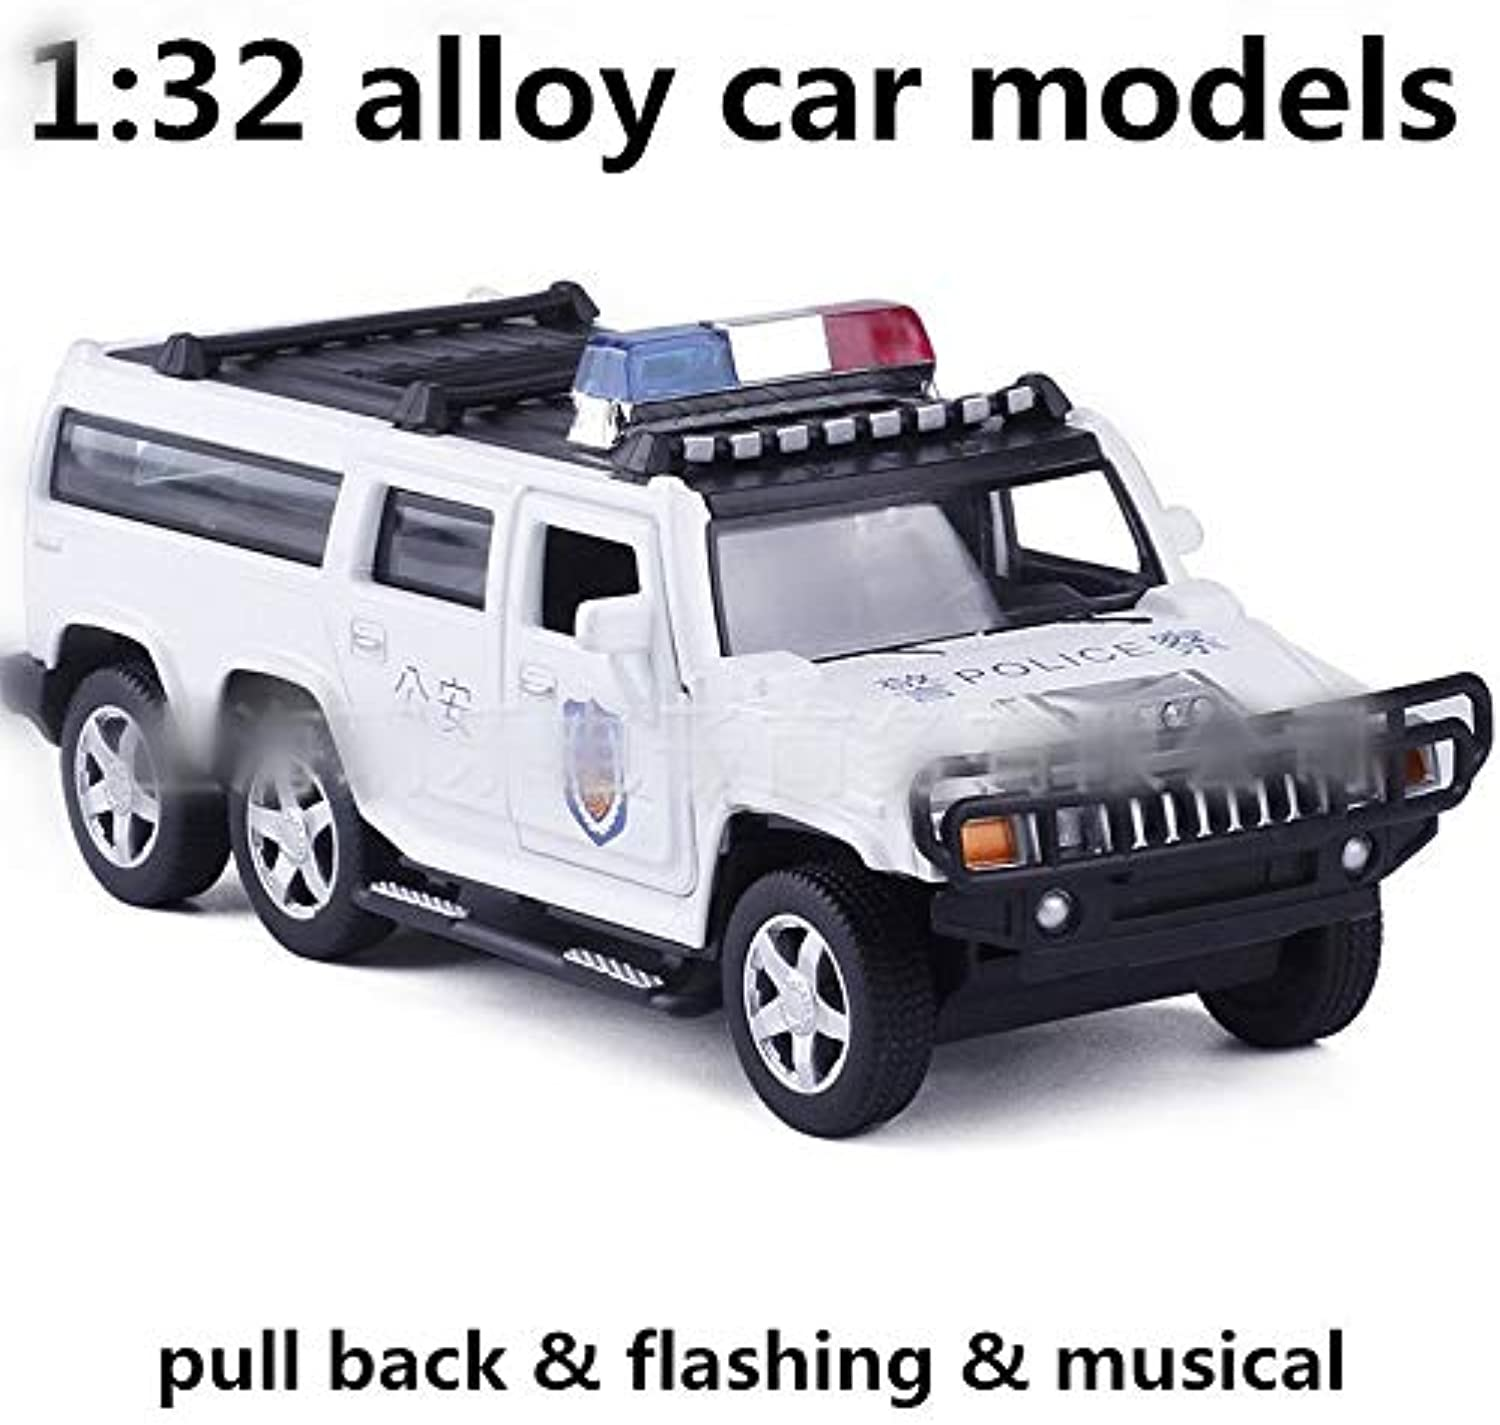 Generic 1 32 Alloy car Models,high Simulation 6 Rounds of Hummer,Toy Vehicles,Metal diecasts,Pull Back&Flashing&Musical,